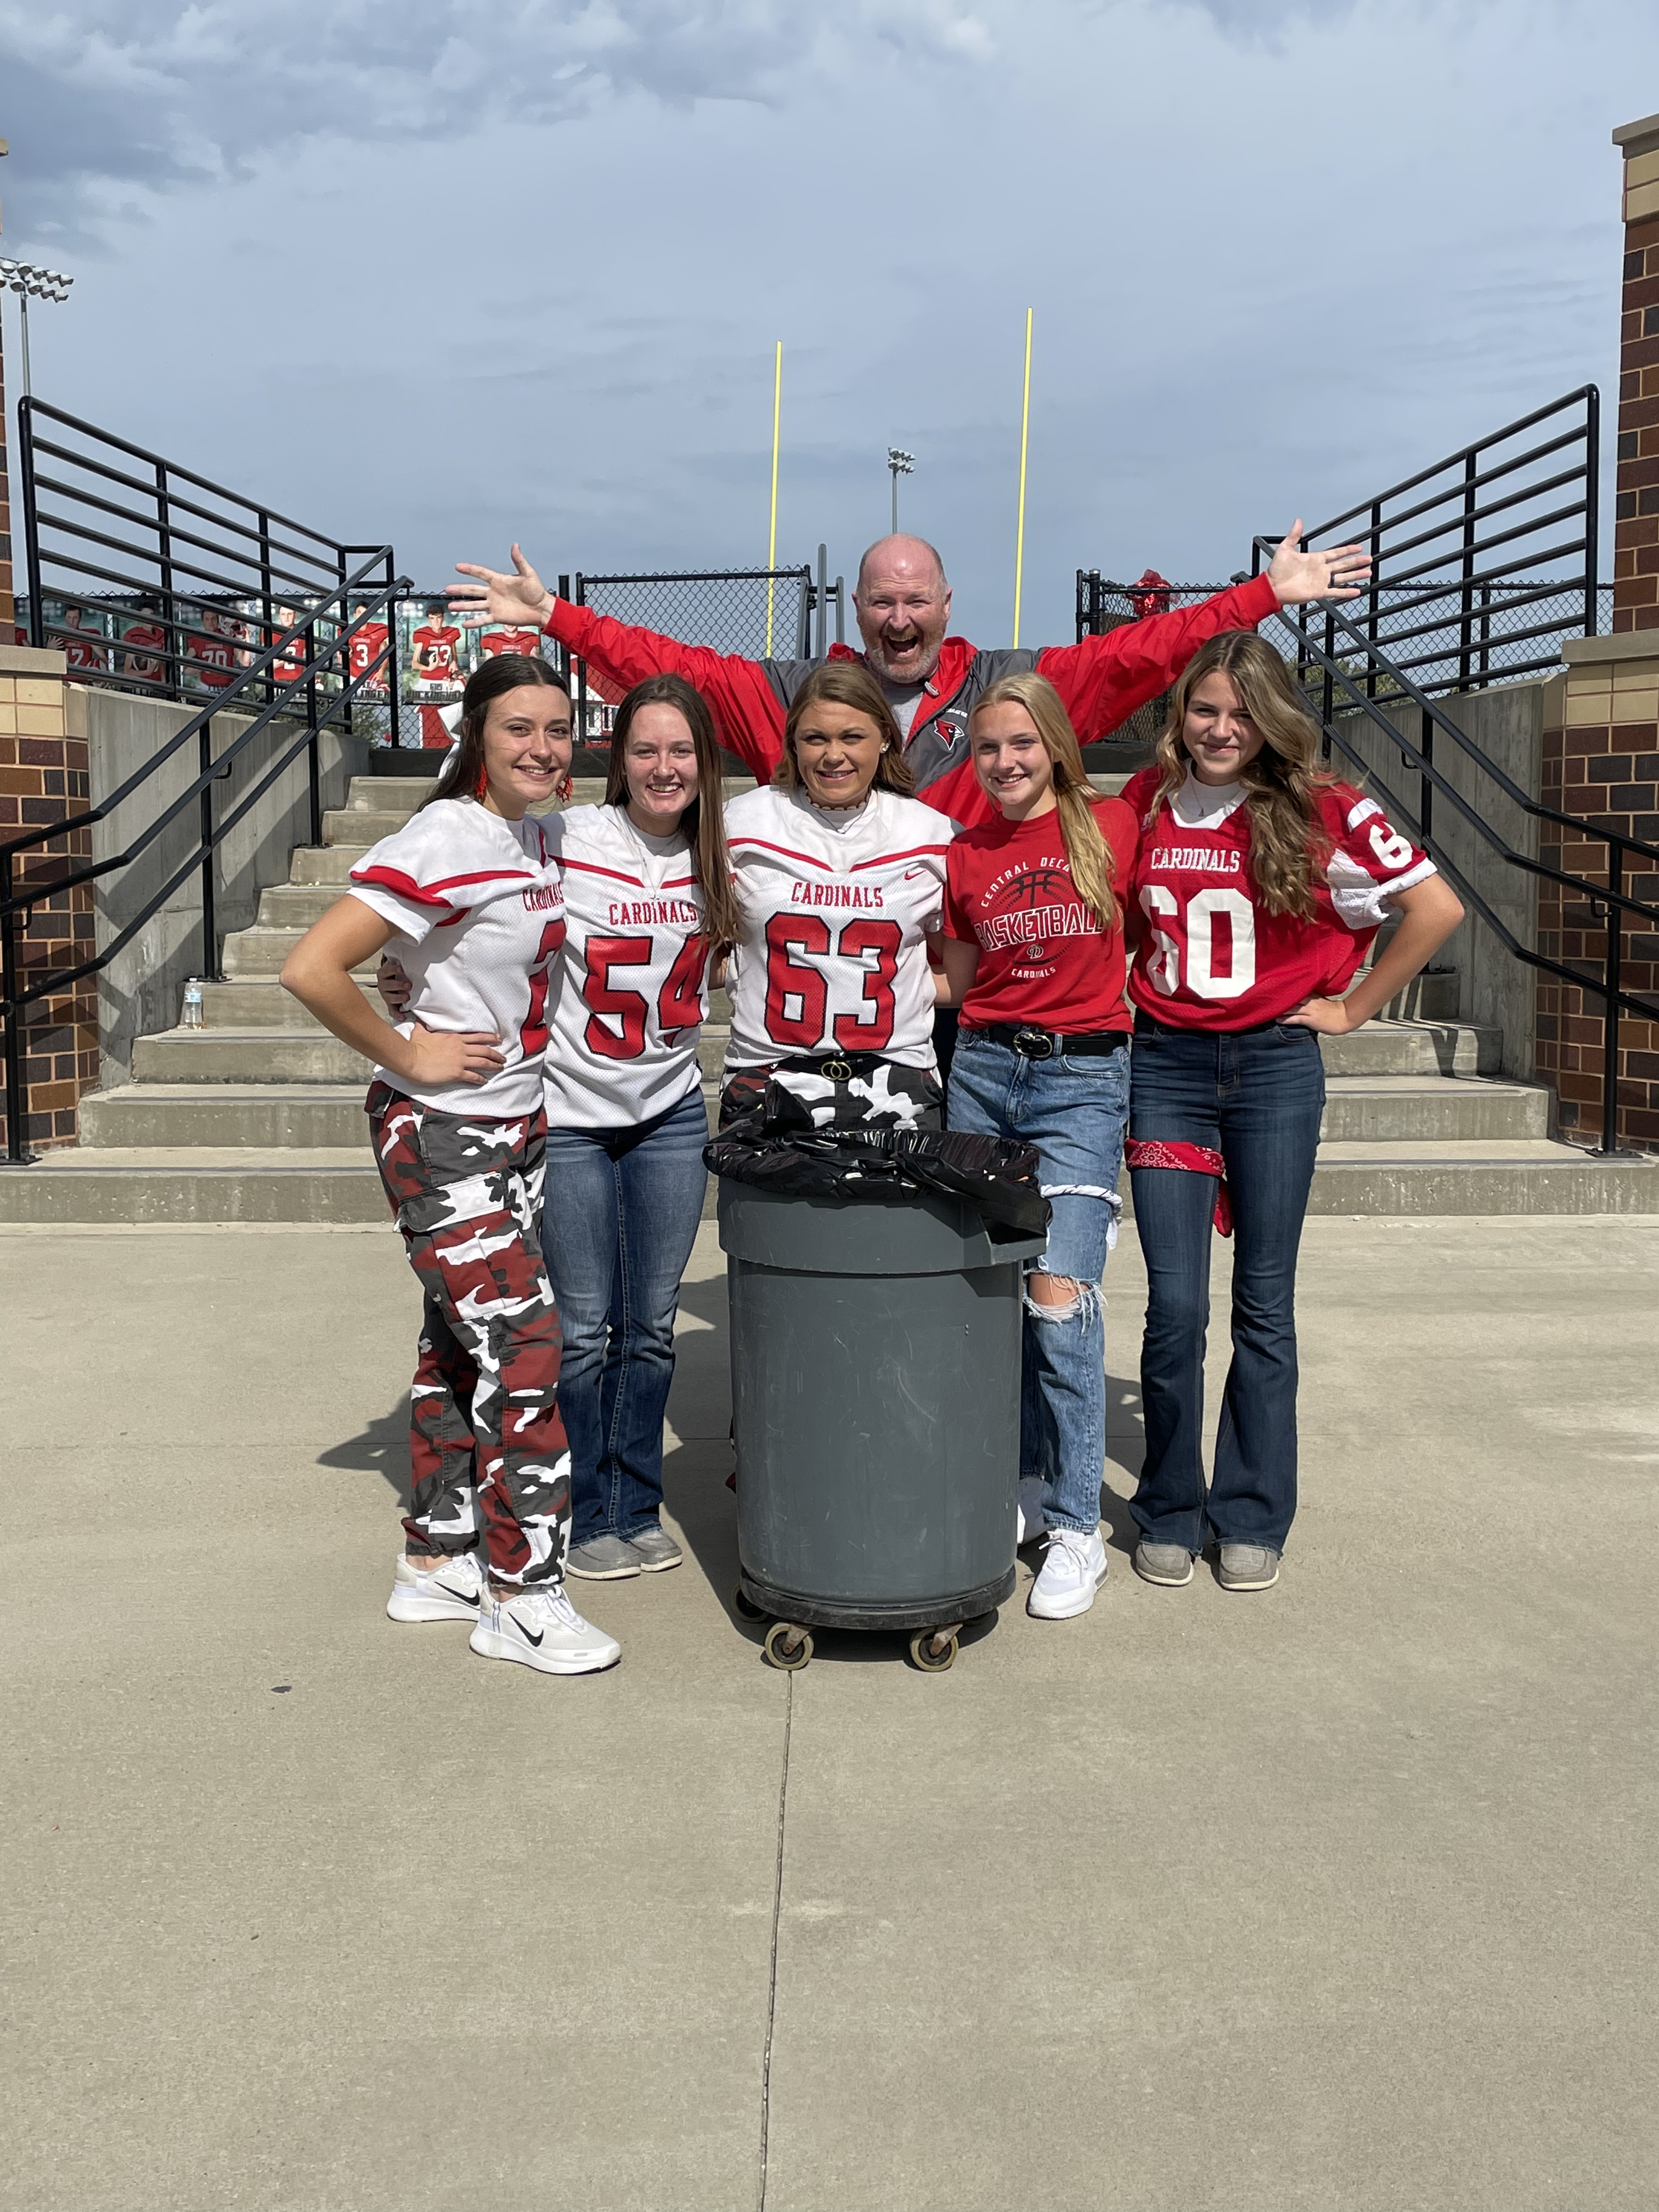 Five high school students gather around a trash can after being recognized for their RED way behavior